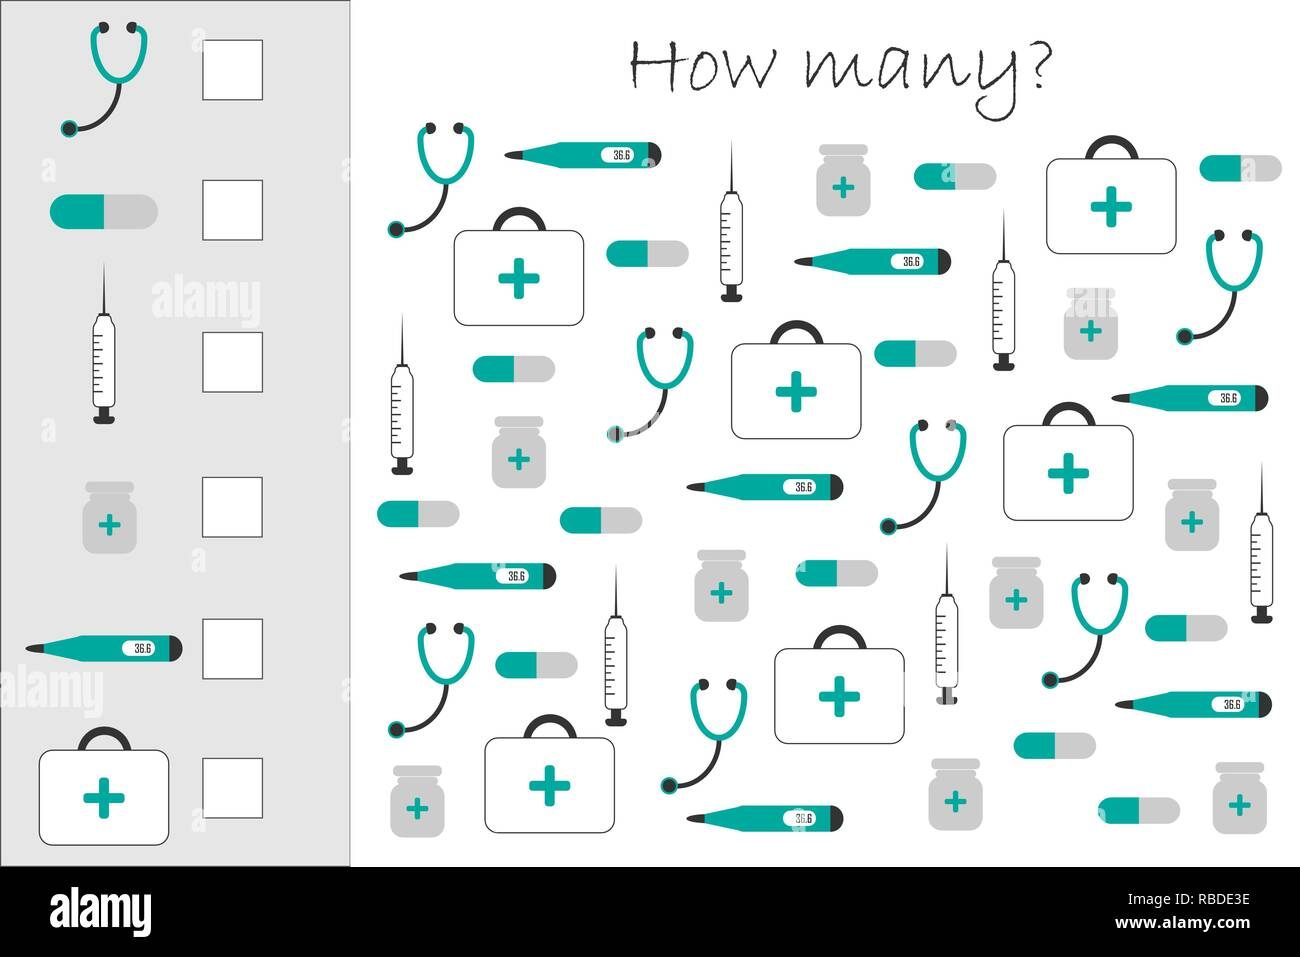 How Many Counting Game With Medical Pictures For Kids